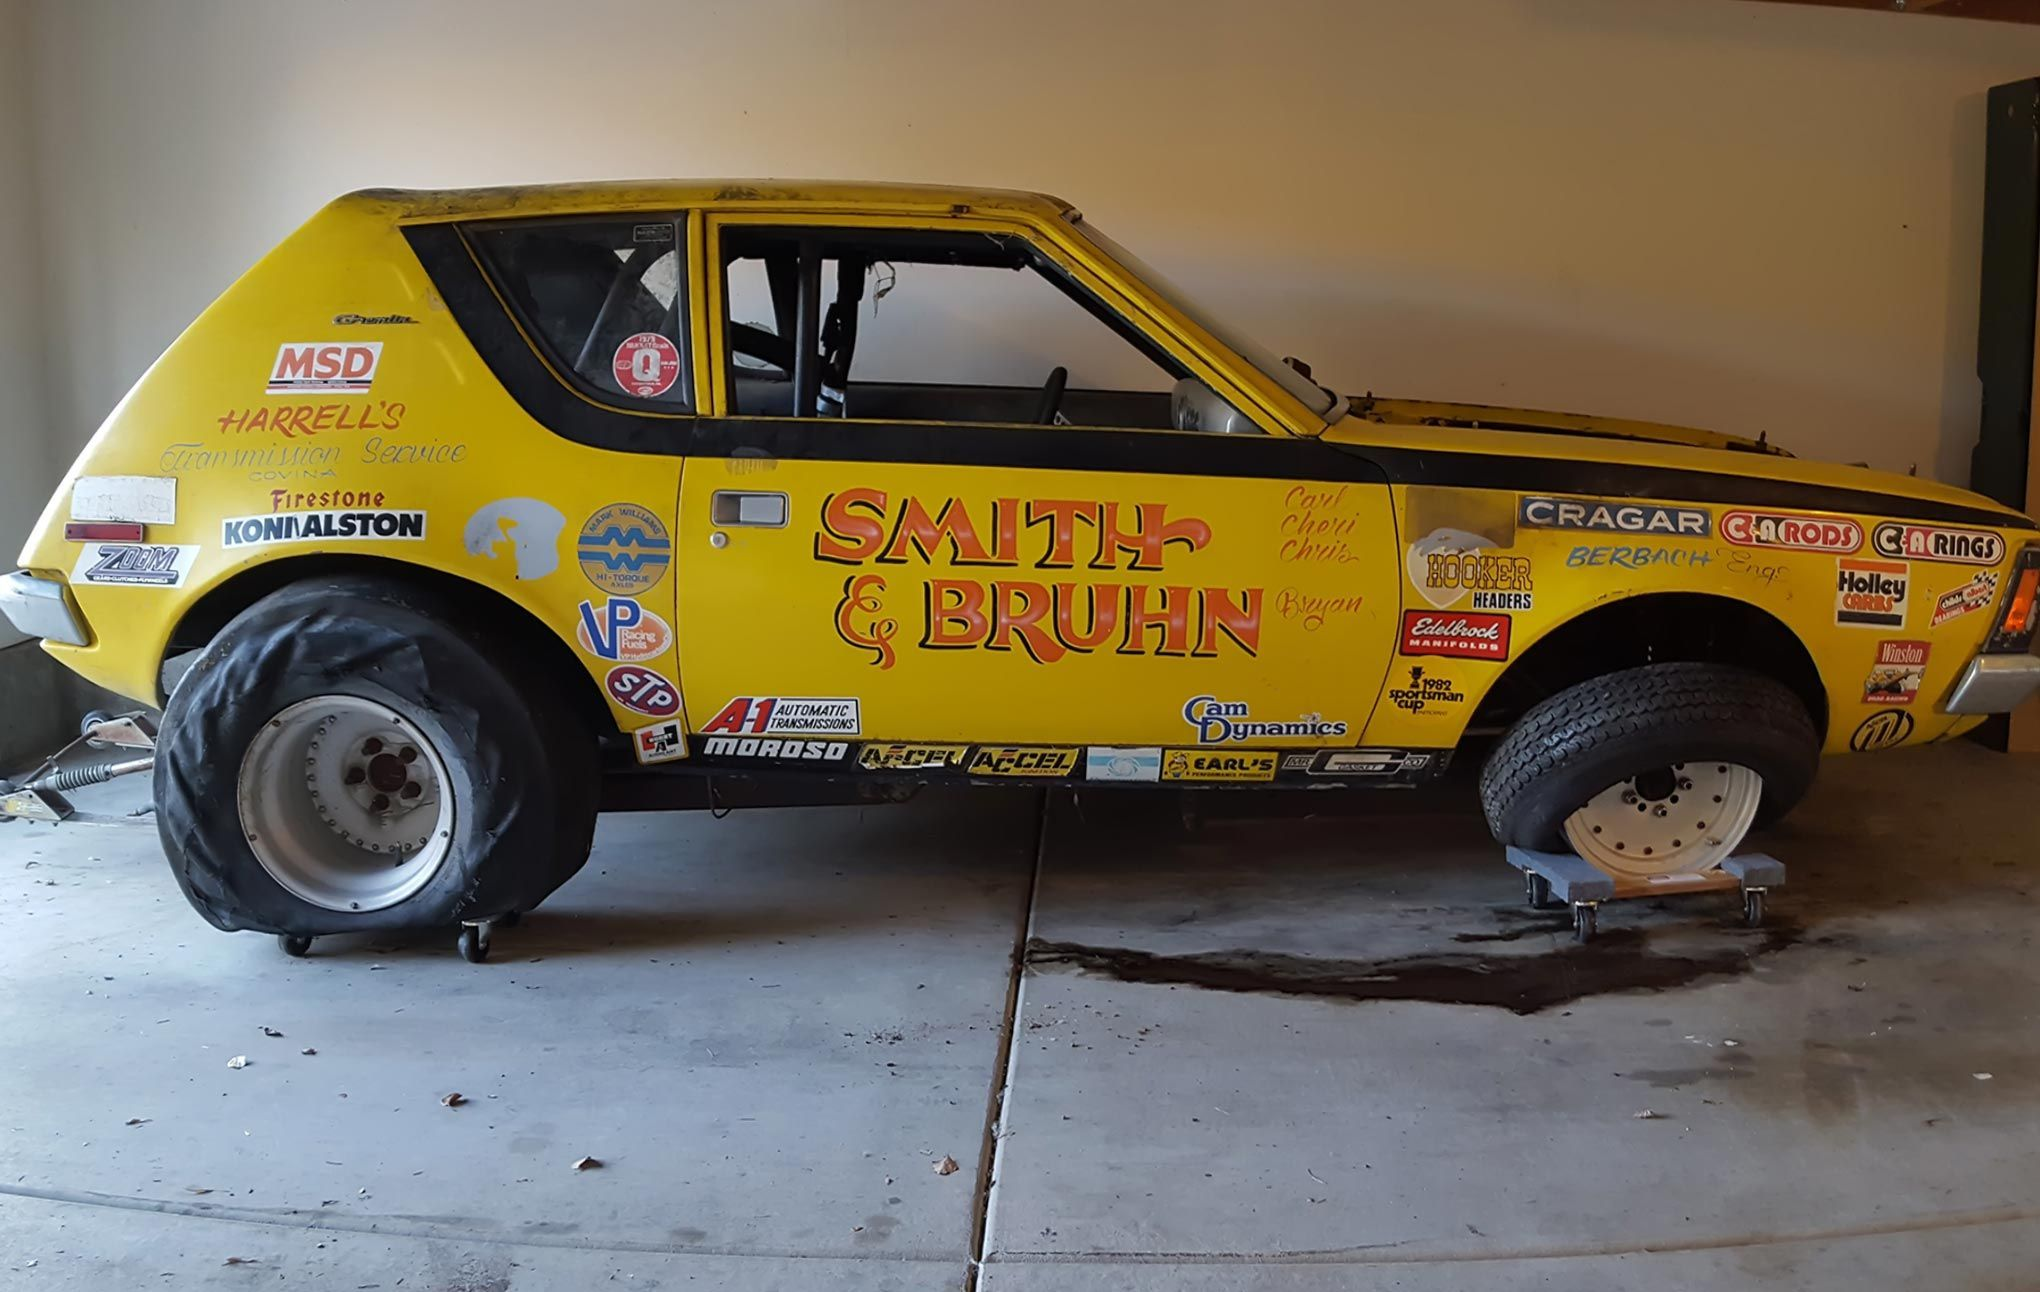 1970 Gremlin drag car Craigslist find AMC Pinterest